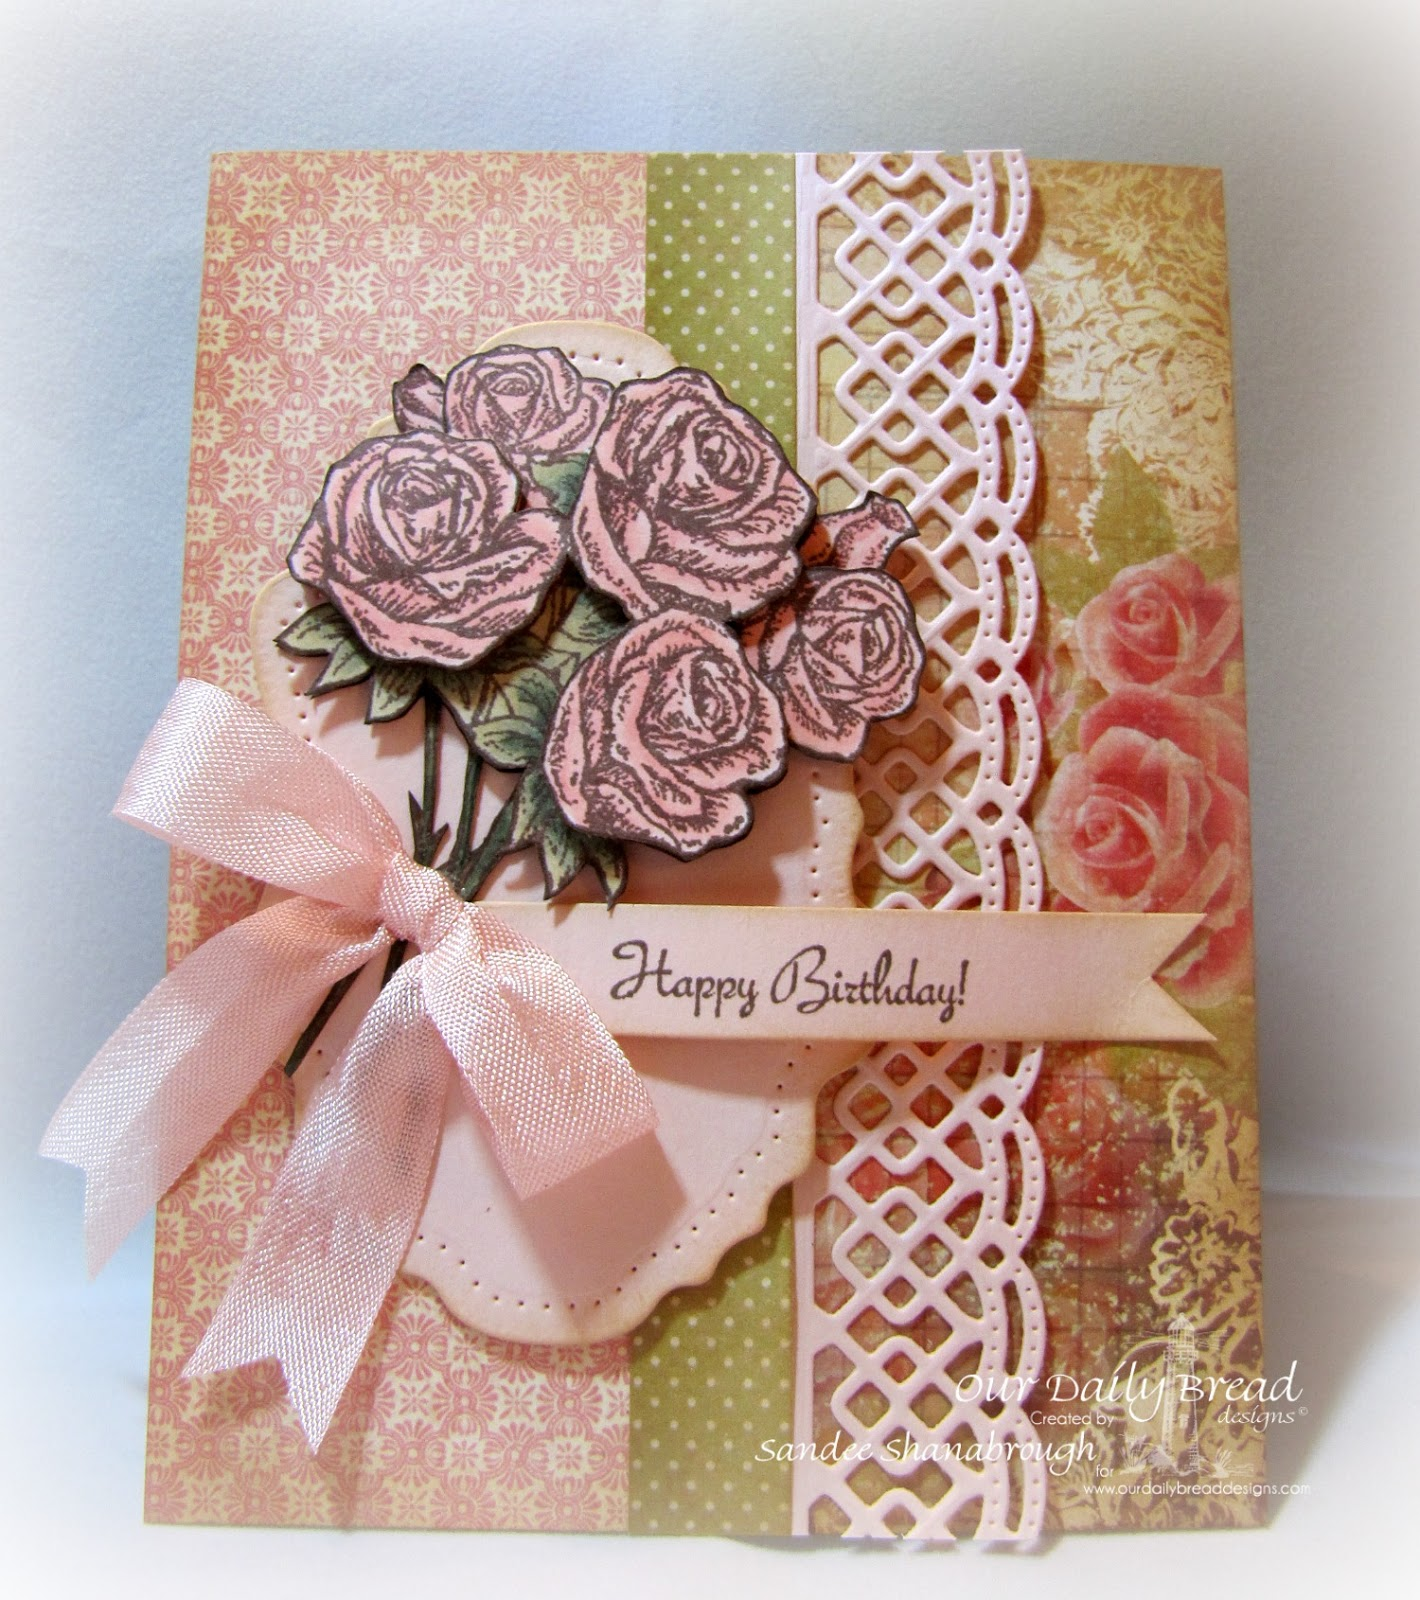 Stamps - Our Daily Bread Designs Rose Bouquet, ODBD Custom Vintage Label Dies, ODBD Custom Beautiful Borders Dies, ODBD Blushing Rose Paper Collection